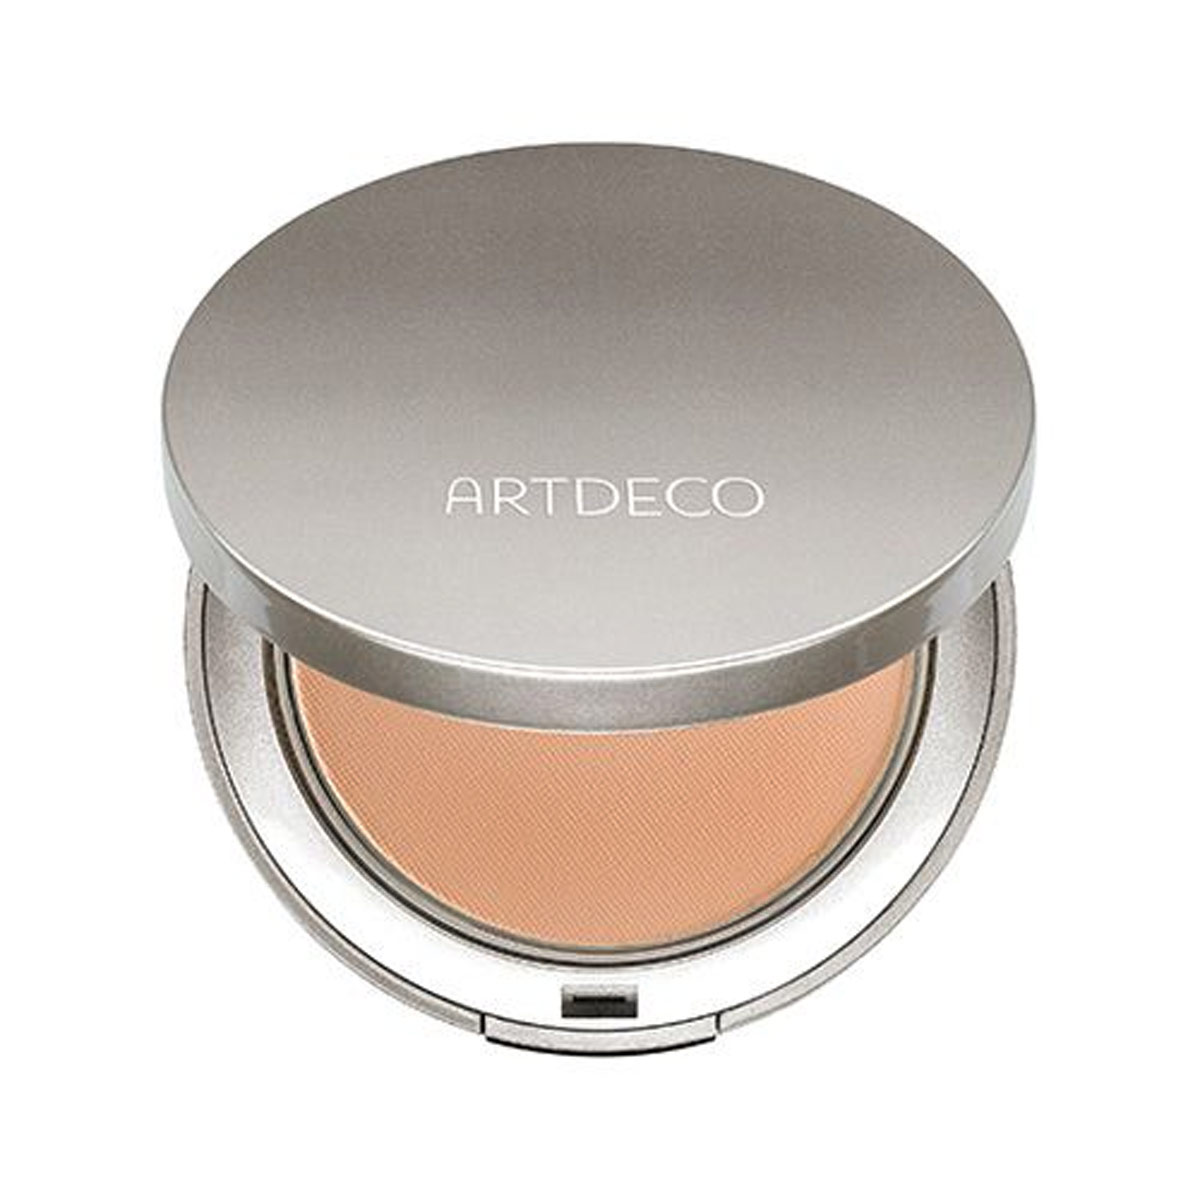 Puder Artdeco Mineral Compact Powder Mineralny puder prasowany   9 g - 10 Basic Beige